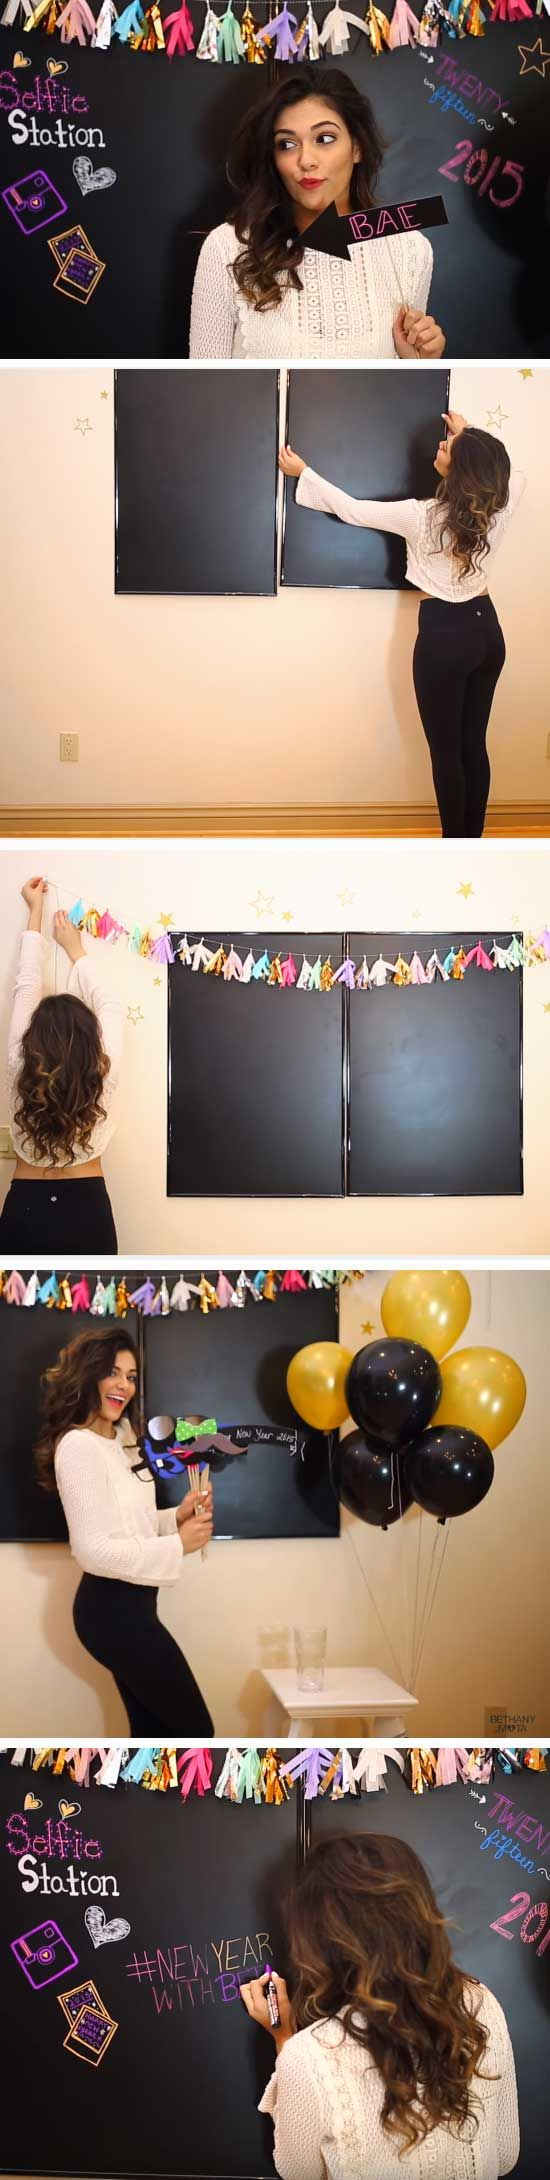 Best 25 birthday backdrop ideas on pinterest baby for Last minute party ideas